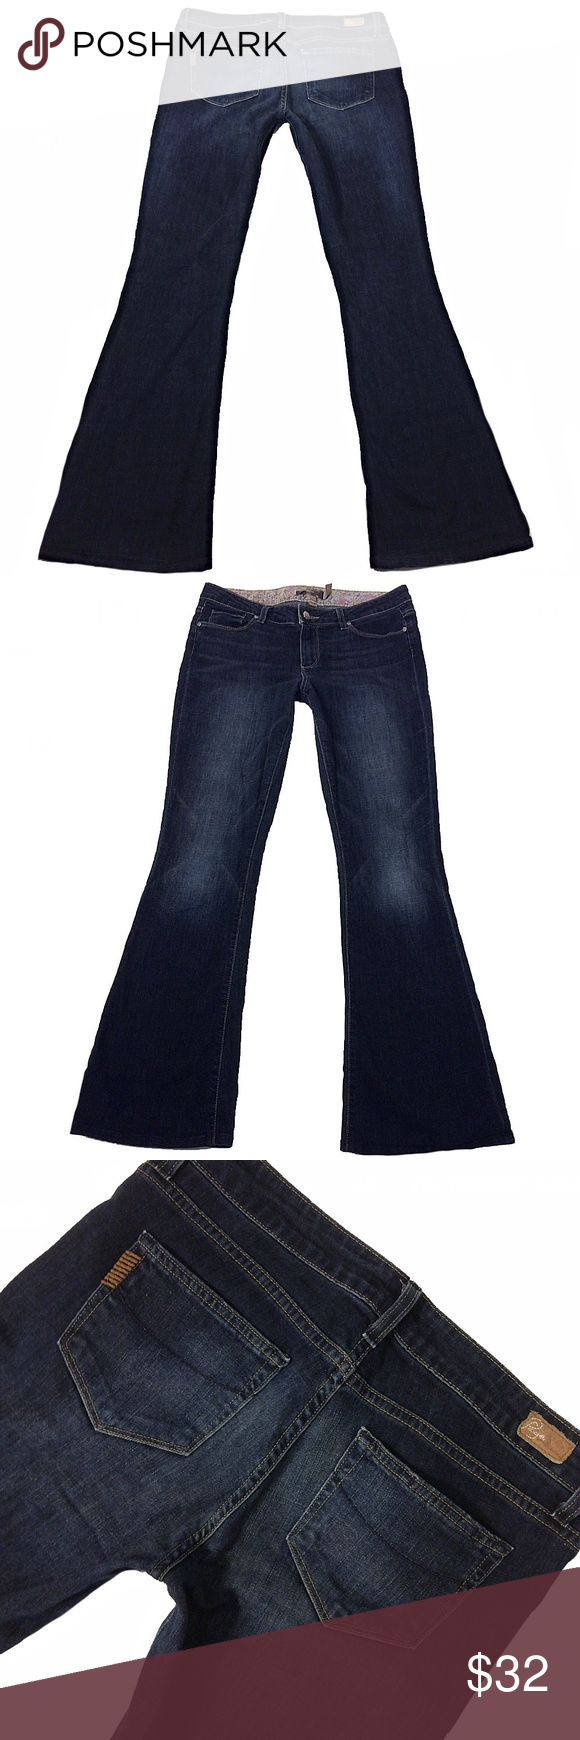 """Paige Denim """"Bell Canyon"""" SZ 29 Flare Mid-Rise Paige Denim """"Bell Canyon"""" Junior's*SZ 29*Flare Mid-Rise Dark Stretch*Inseam 32.5"""" Paige Jeans Jeans Flare & Wide Leg"""